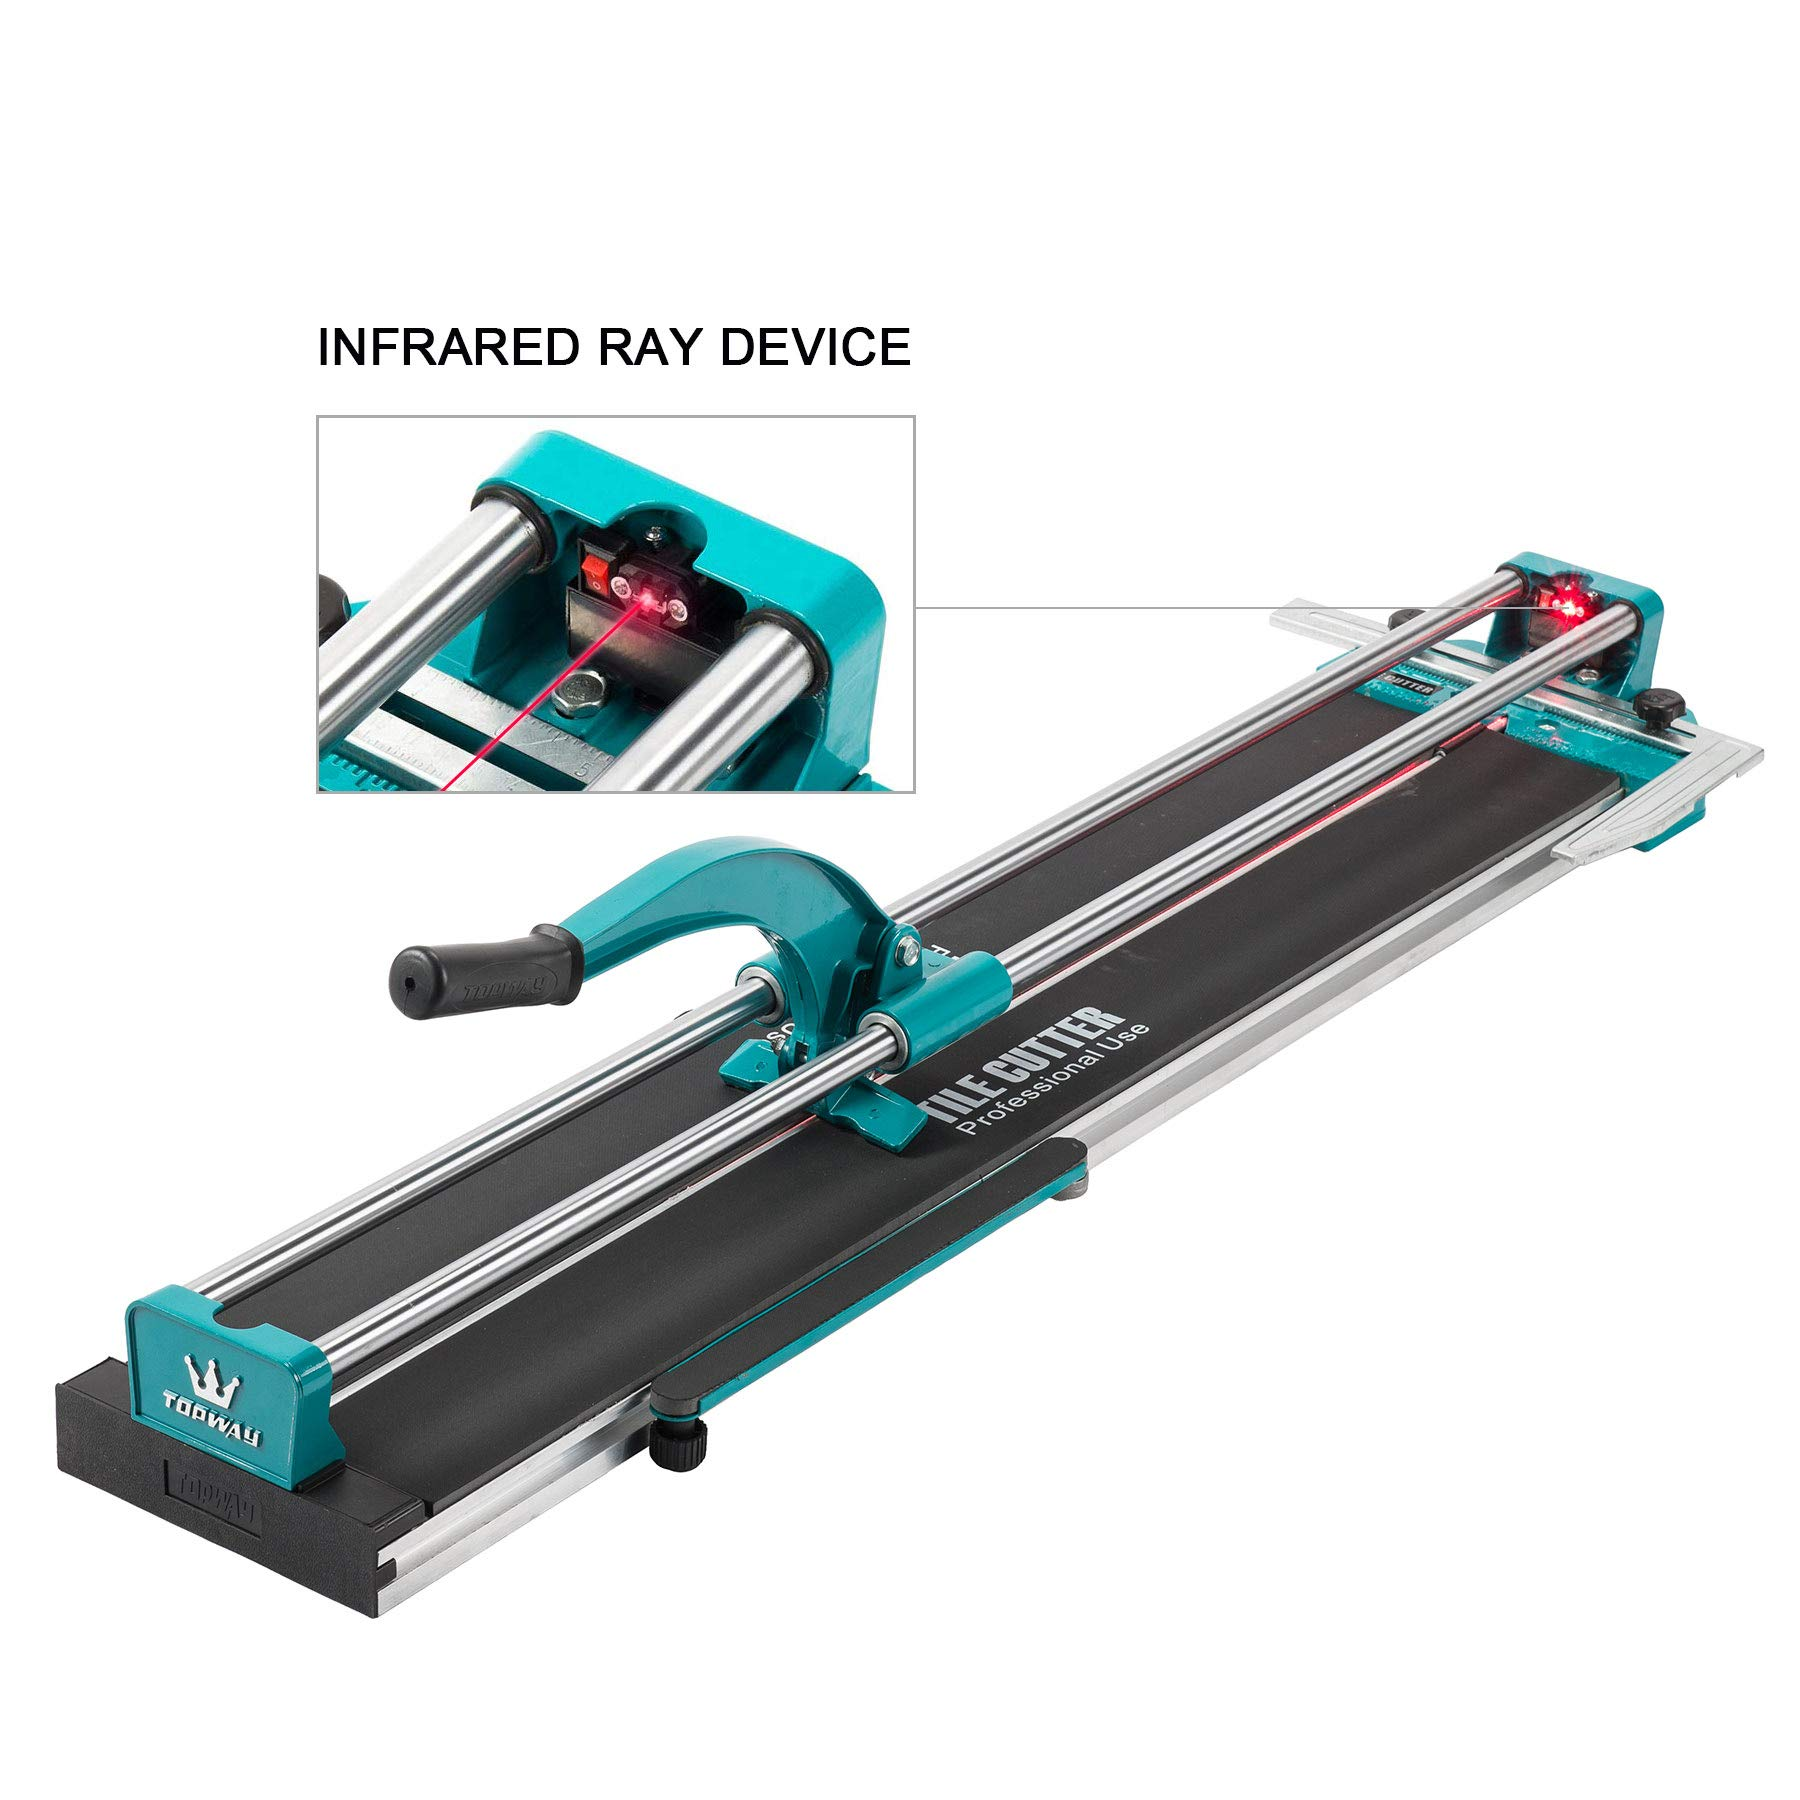 CO-Z Manual Tile Cutter 40'' Cutting Length Professional Porcelain Ceramic Floor Tile Cutter Machine Adjustable Laser Guide for Precision Cutting (40 inch) by CO-Z (Image #5)